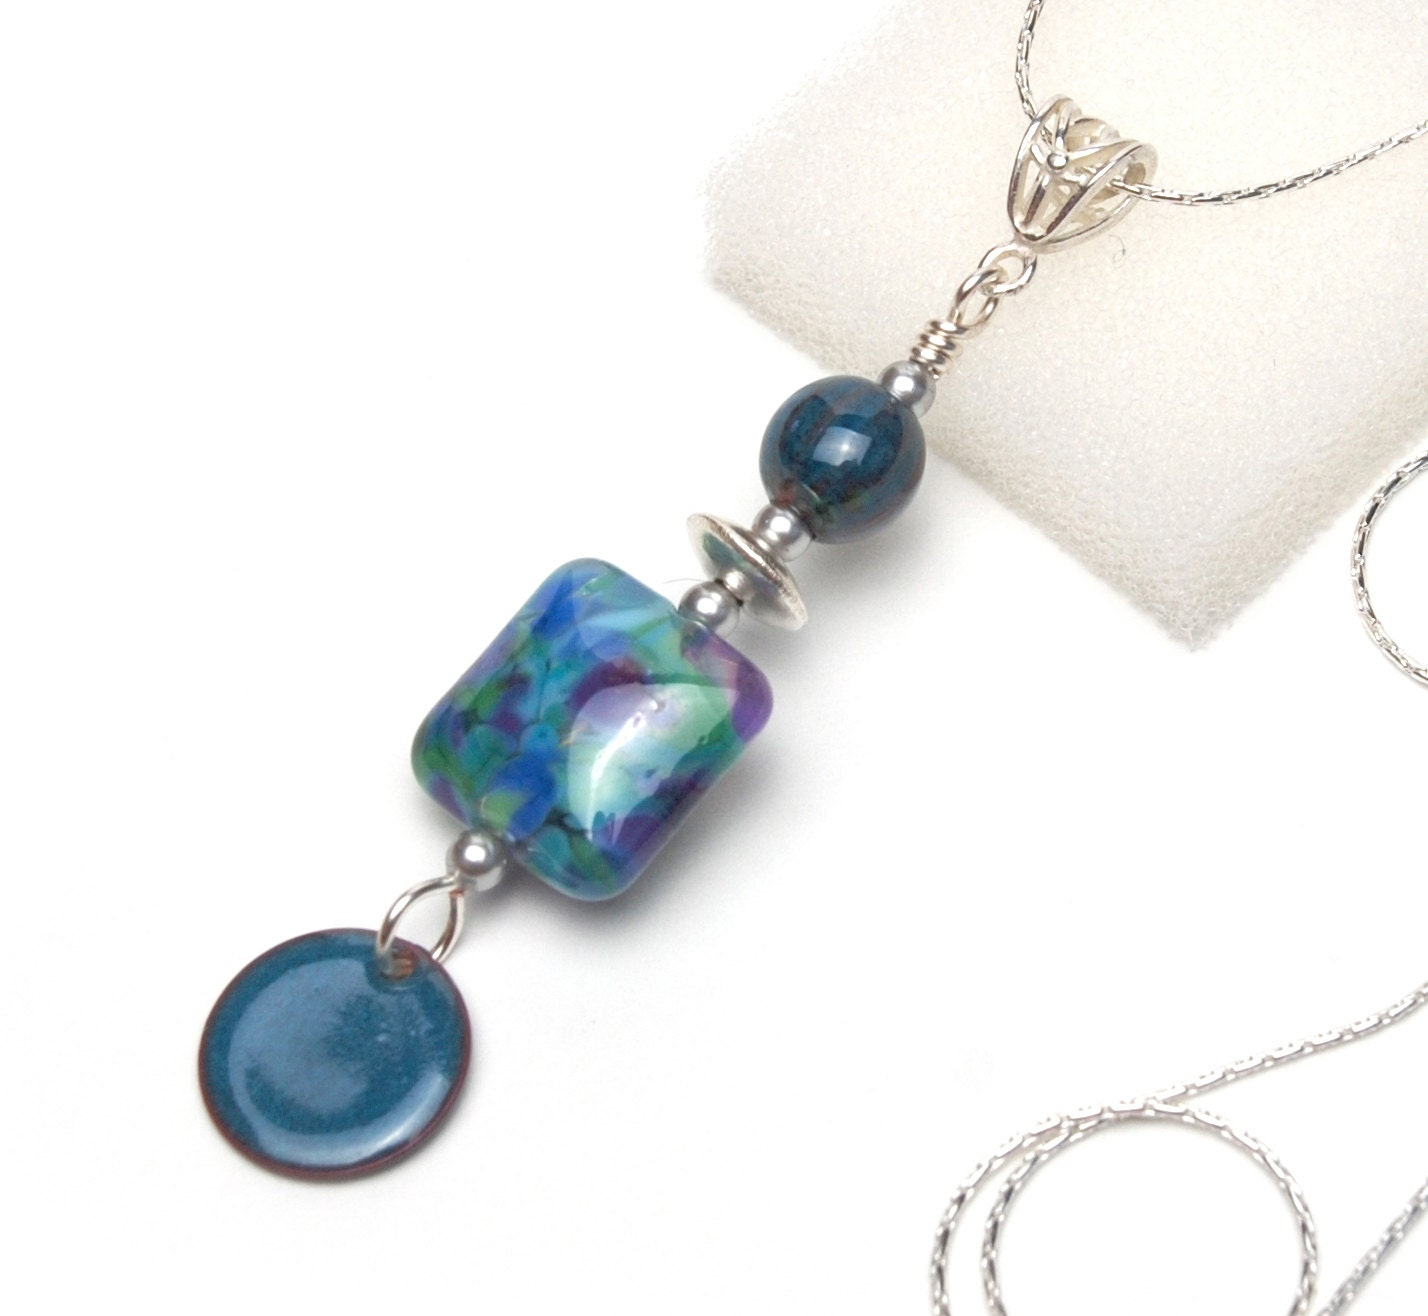 Blue Green and Violet Pendant Necklace - Artisan Lampwork Glass and Enameled Beads on Silver Plated Chain - lilicharms